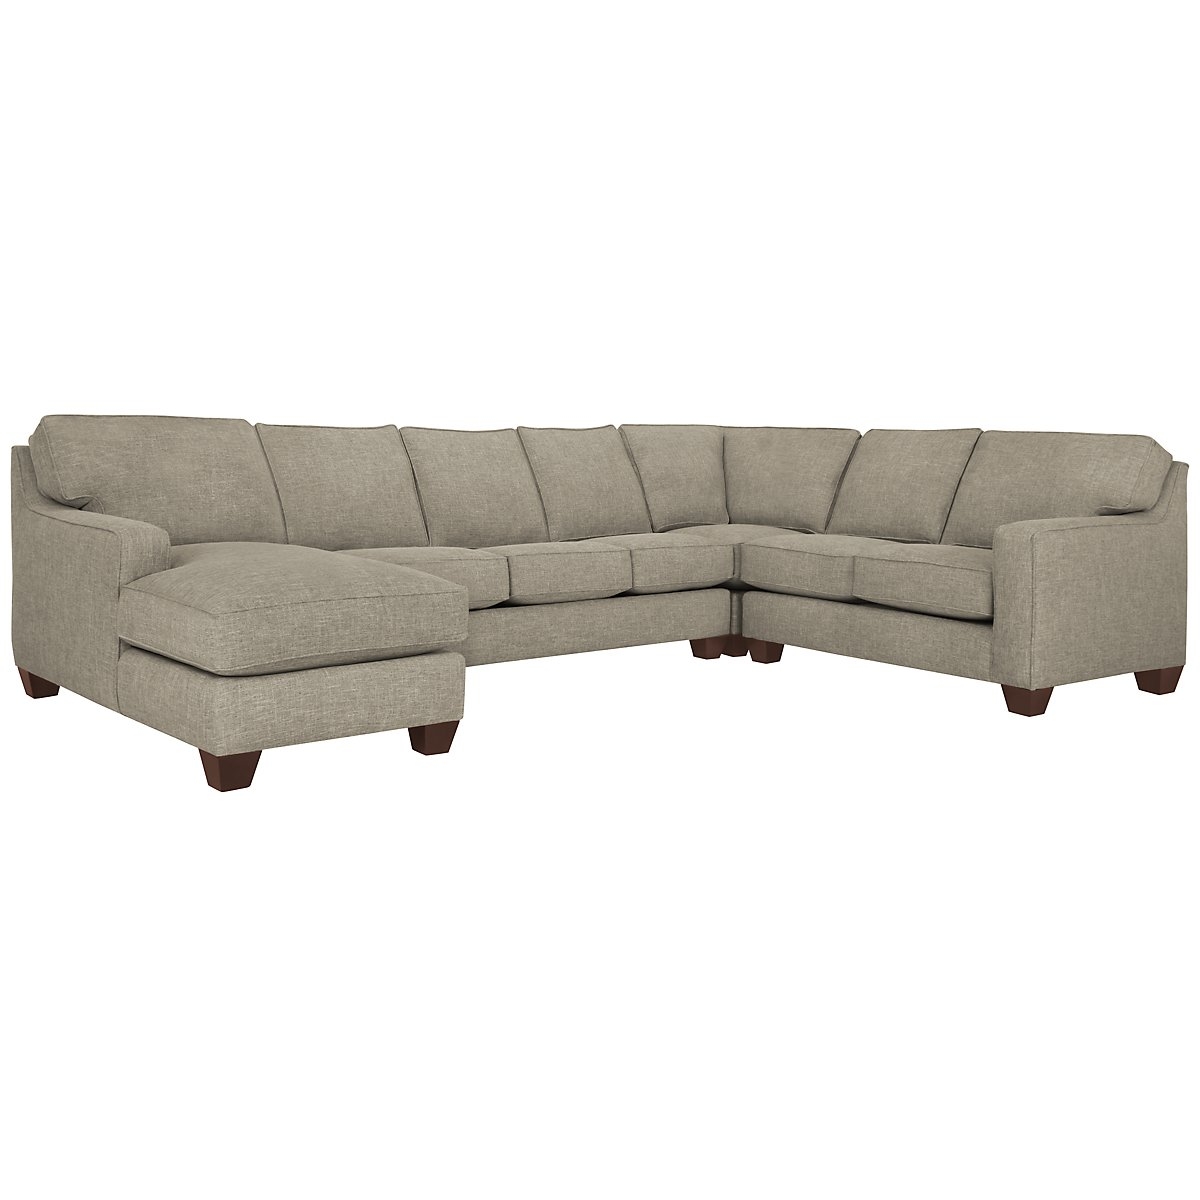 York Pewter Fabric Left Chaise Memory Foam Sleeper Sectional on chaise recliner chair, chaise sofa sleeper, chaise furniture,